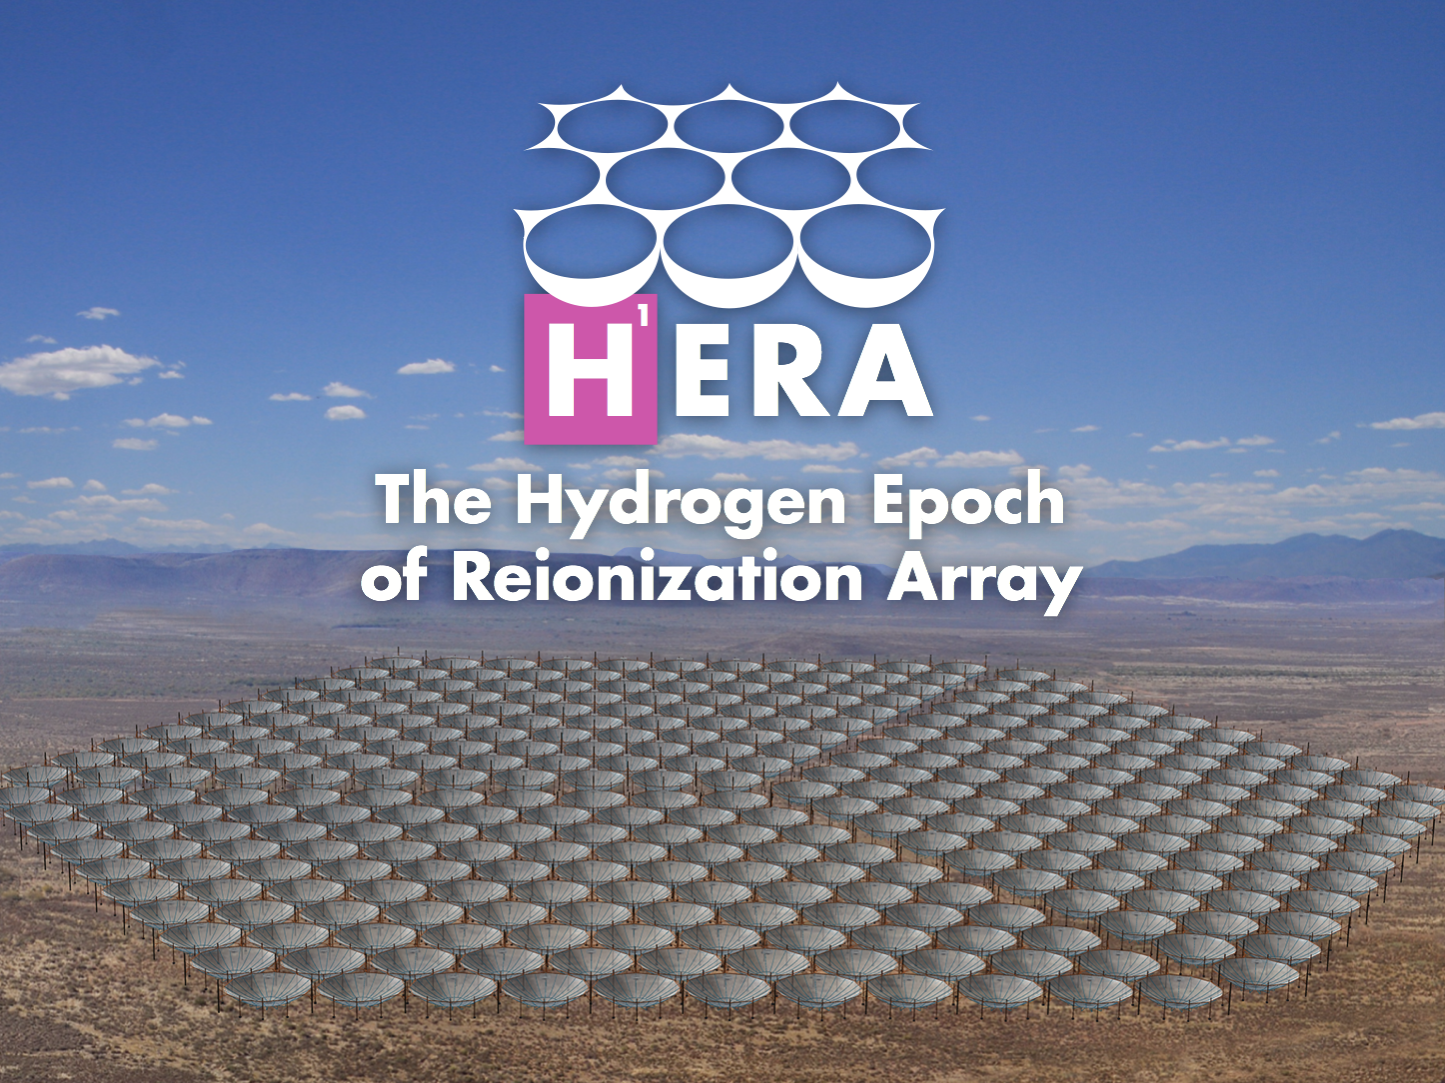 A rendering of the 320 dishes in the core of HERA, currently under construction in the Karoo Desert in South Africa.  Image Credit: Dave DeBoer